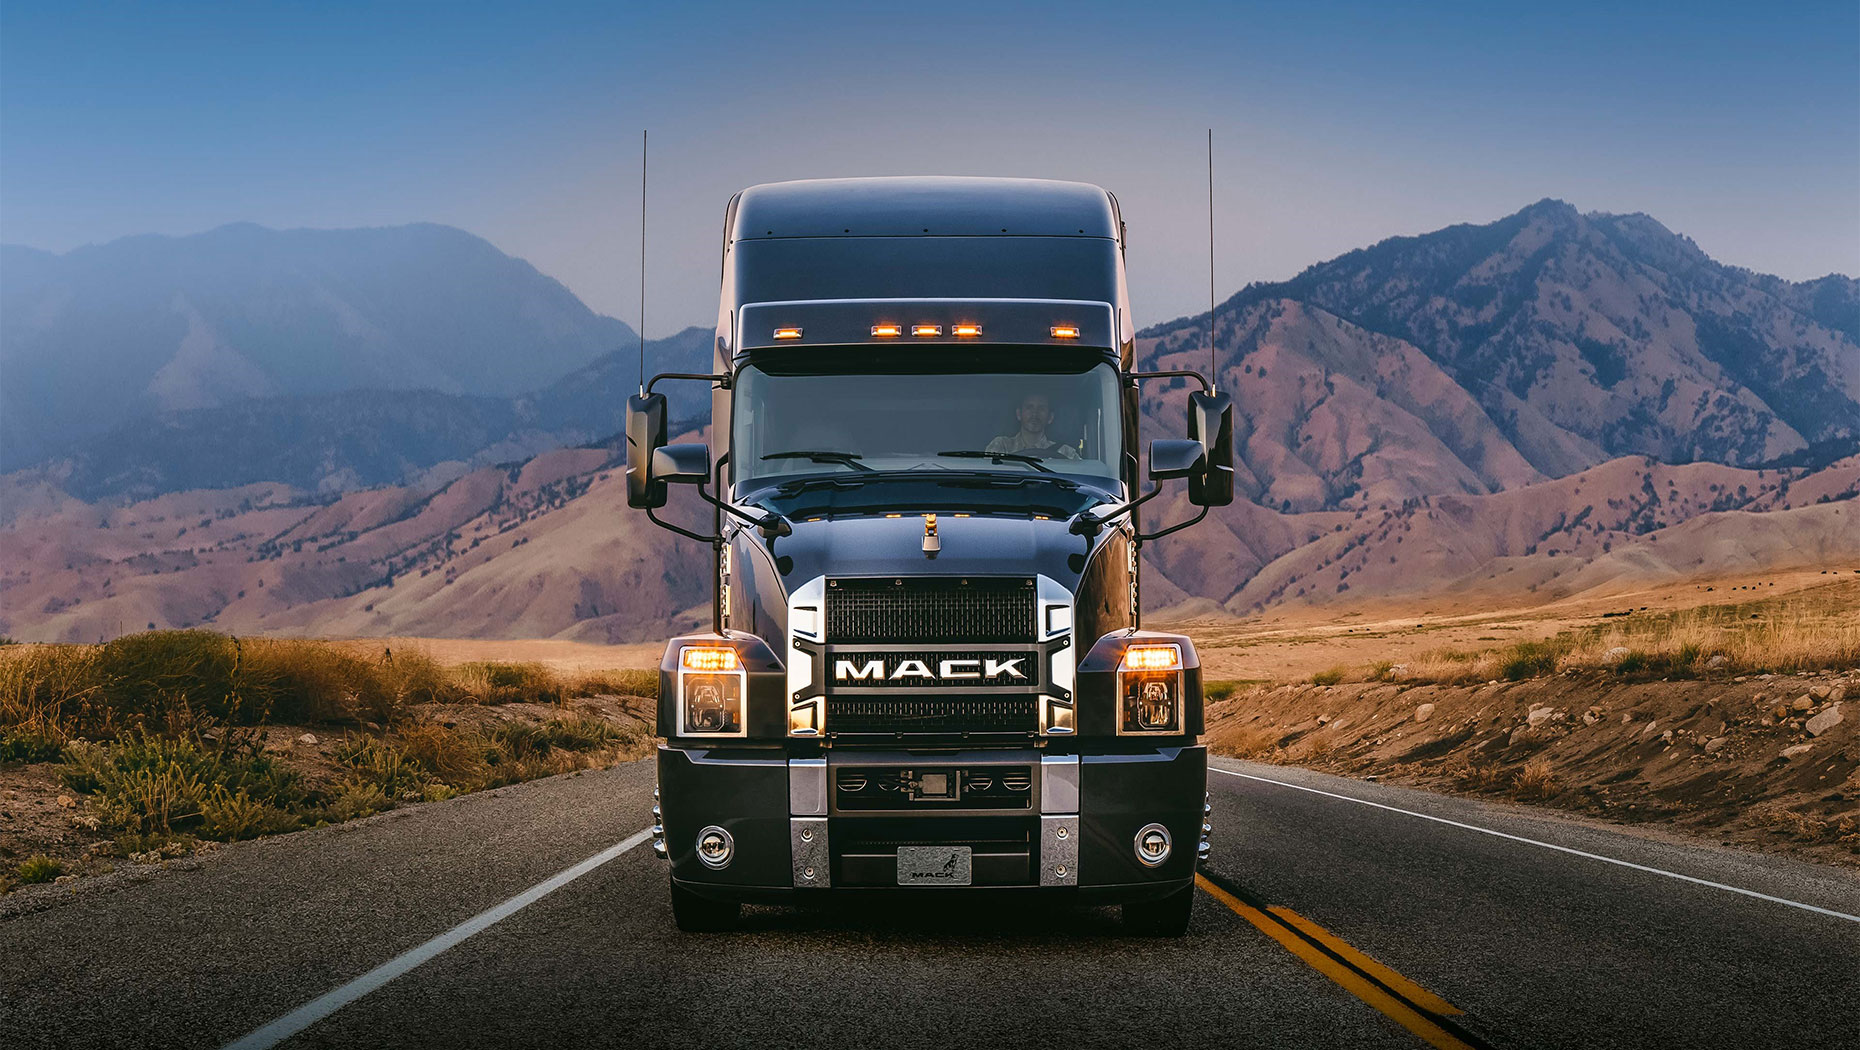 Mack Trucks Celebrates of its 100th Anniversary